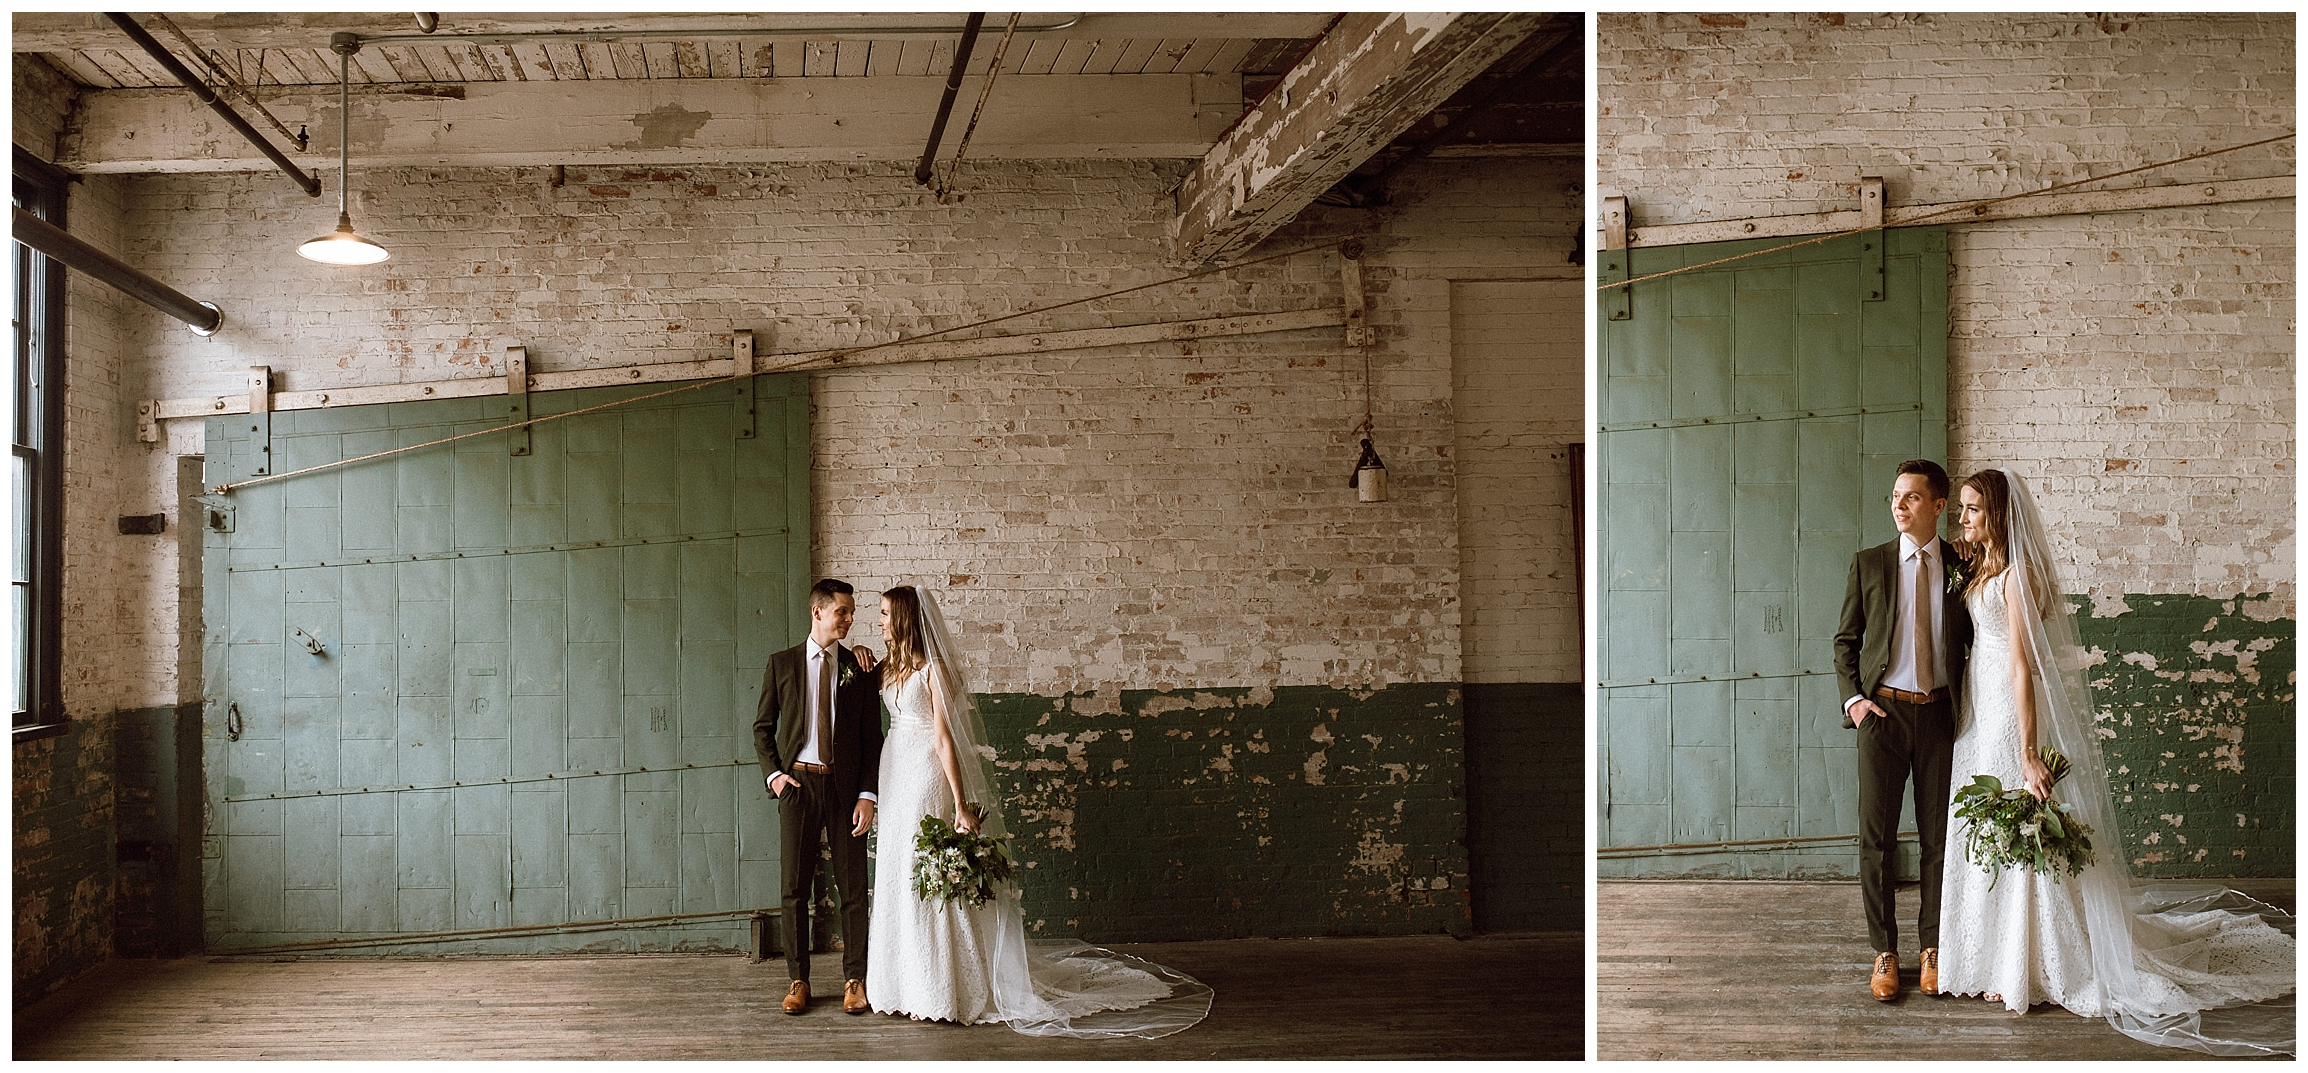 Katie_Vonasek_Photography_Ford_Piquette_Plant_Wedding_Detroit53.JPG